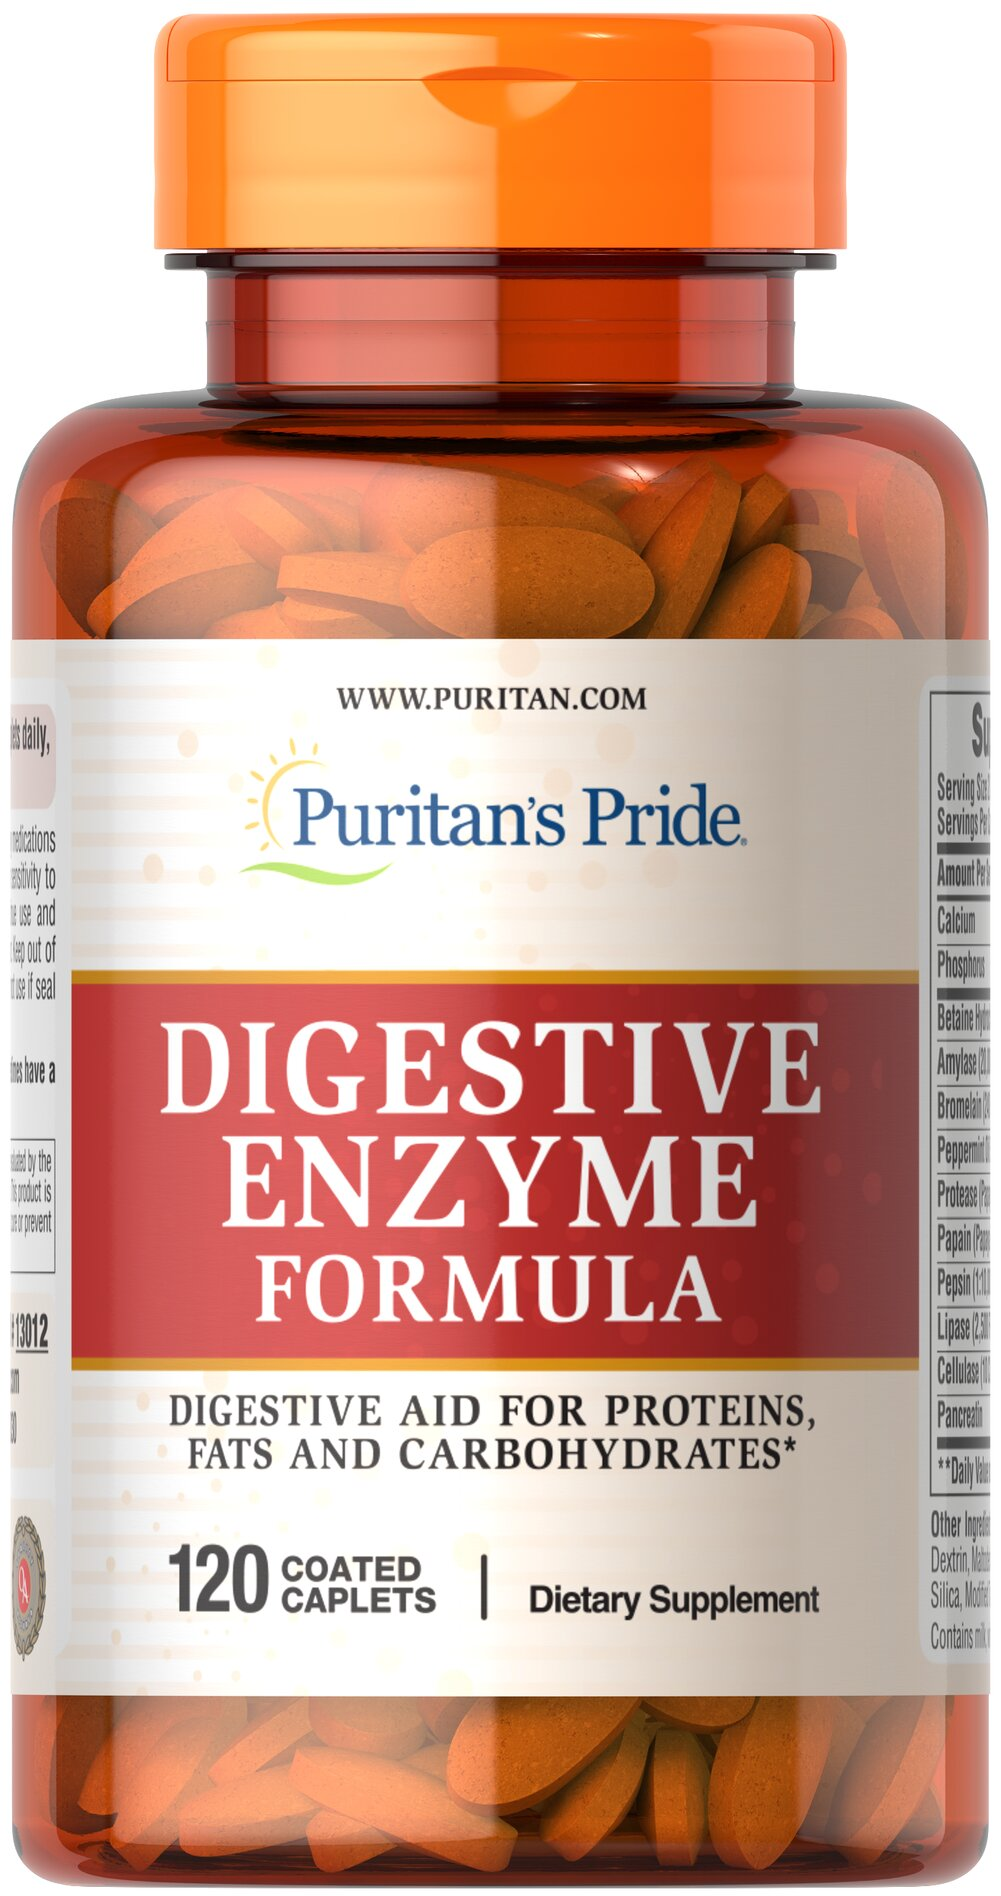 Super Strength Multi Enzyme <p>Enzymes break down the nutritional components of proteins, fats and carbohydrates, making these nutrients available for the body's energy needs, cell growth and other vital functions.** This holistically balanced blend is an enzyme formula that can be used to support proper digestion.**</p><p>Adults can take two (2) caplets, preferably with a meal.</p> 120 Caplets  $23.99